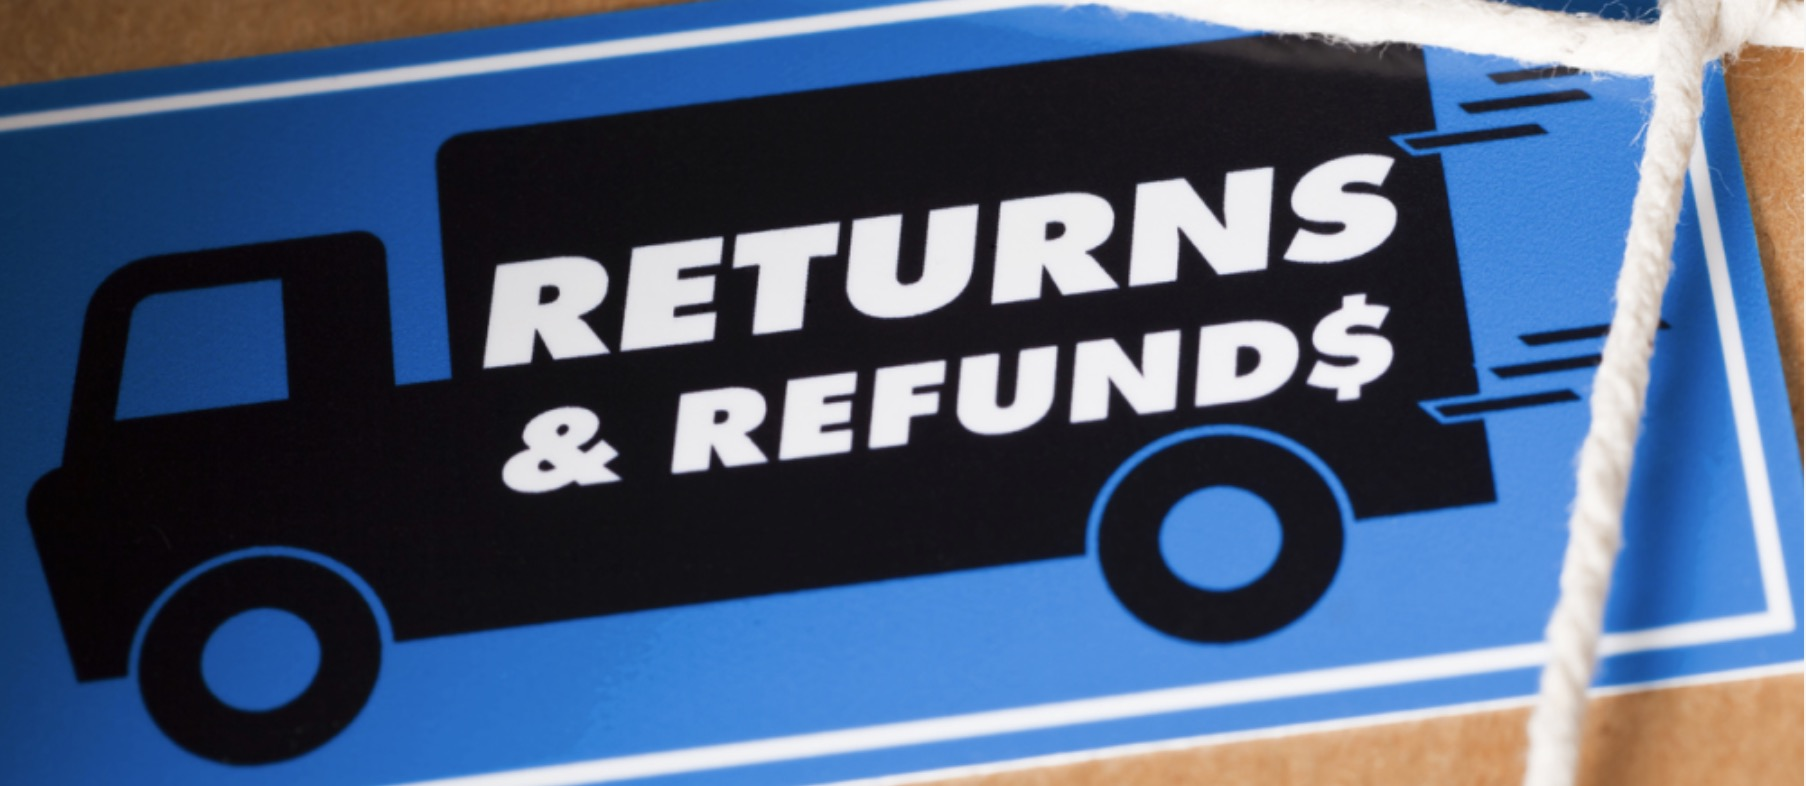 Returns, Exchanges, and Refunds